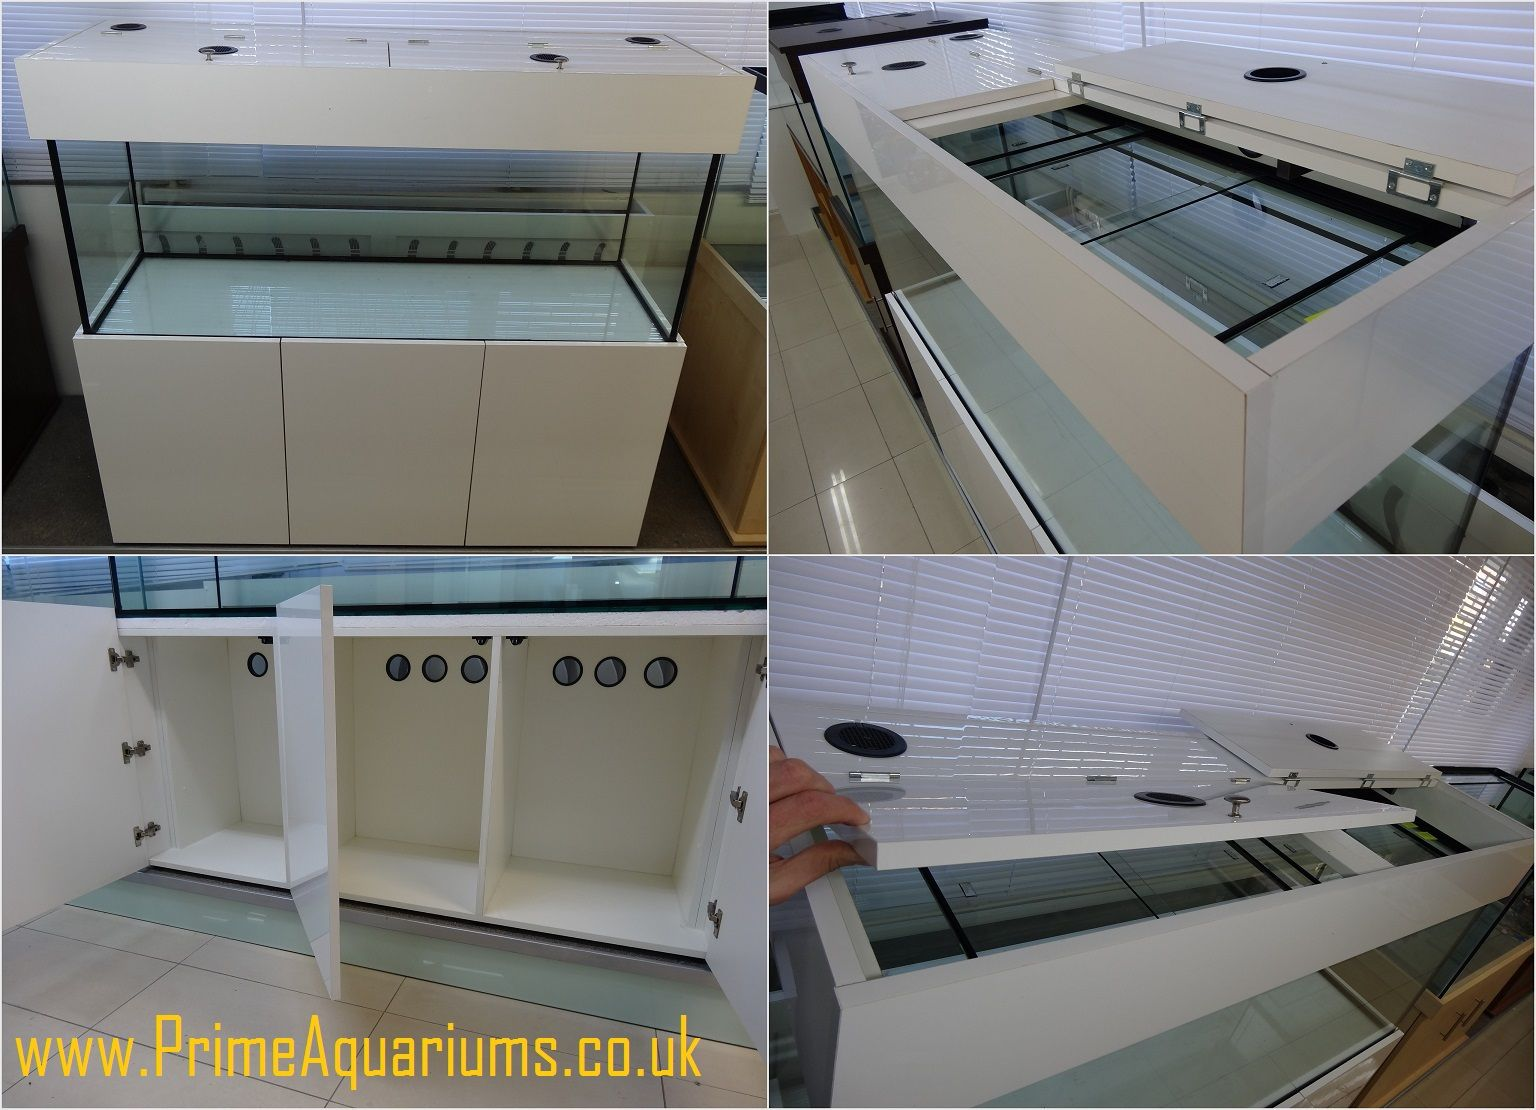 Cabinet aquarium fish tank tropical - High Gloss Acrylic Finish Aquarium Cabinets And Hoods Manufactured Here In The Uk For Full